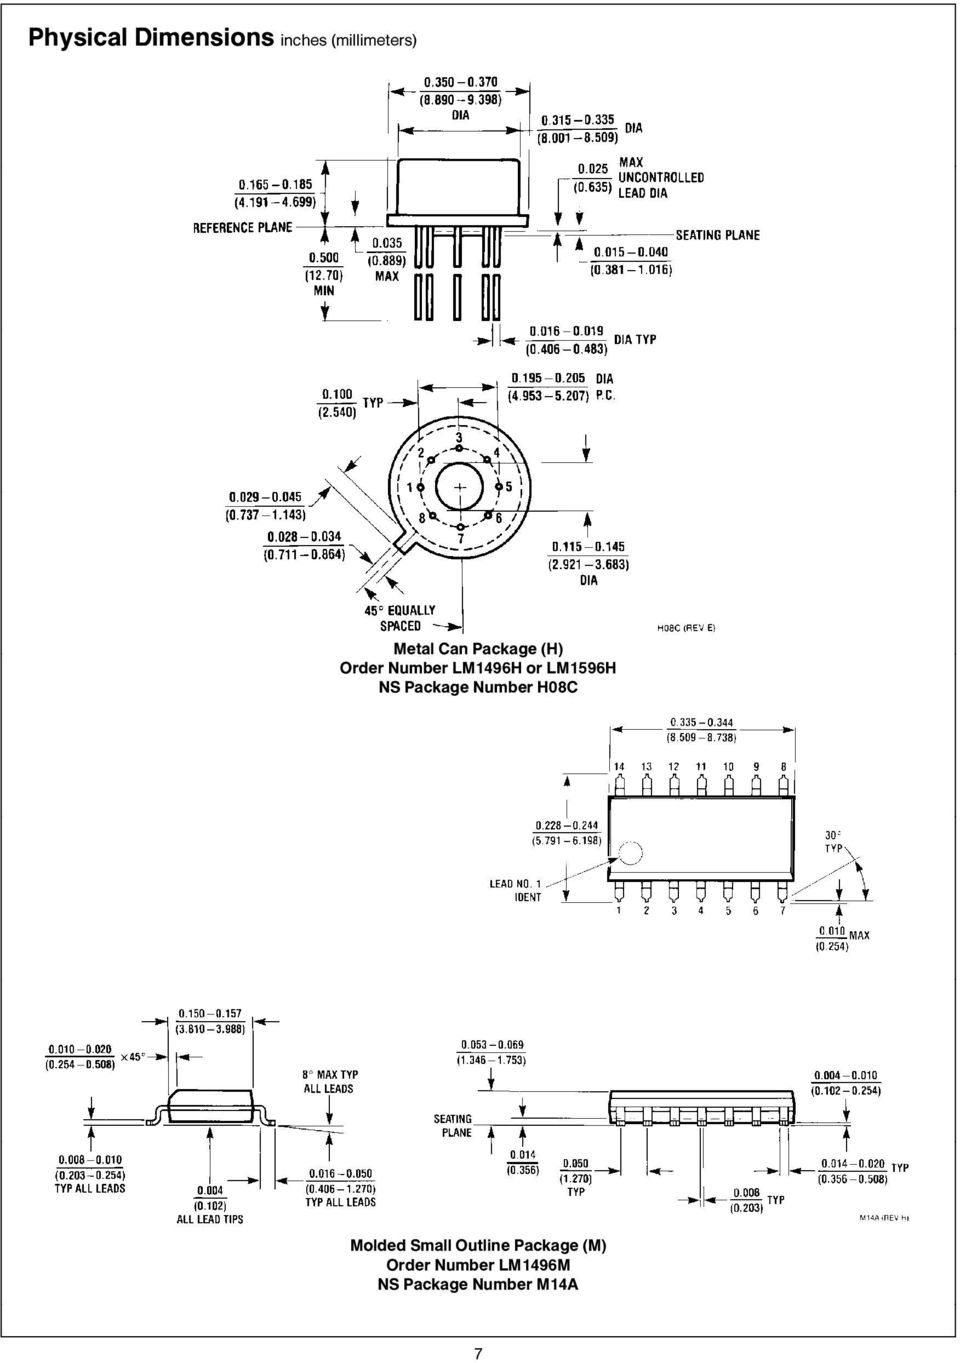 Lm1596 Lm1496 Balanced Modulator Demodulator Pdf Lm555 Lm555c Timer Circuits Ns Package Number H08c Molded Small Outline